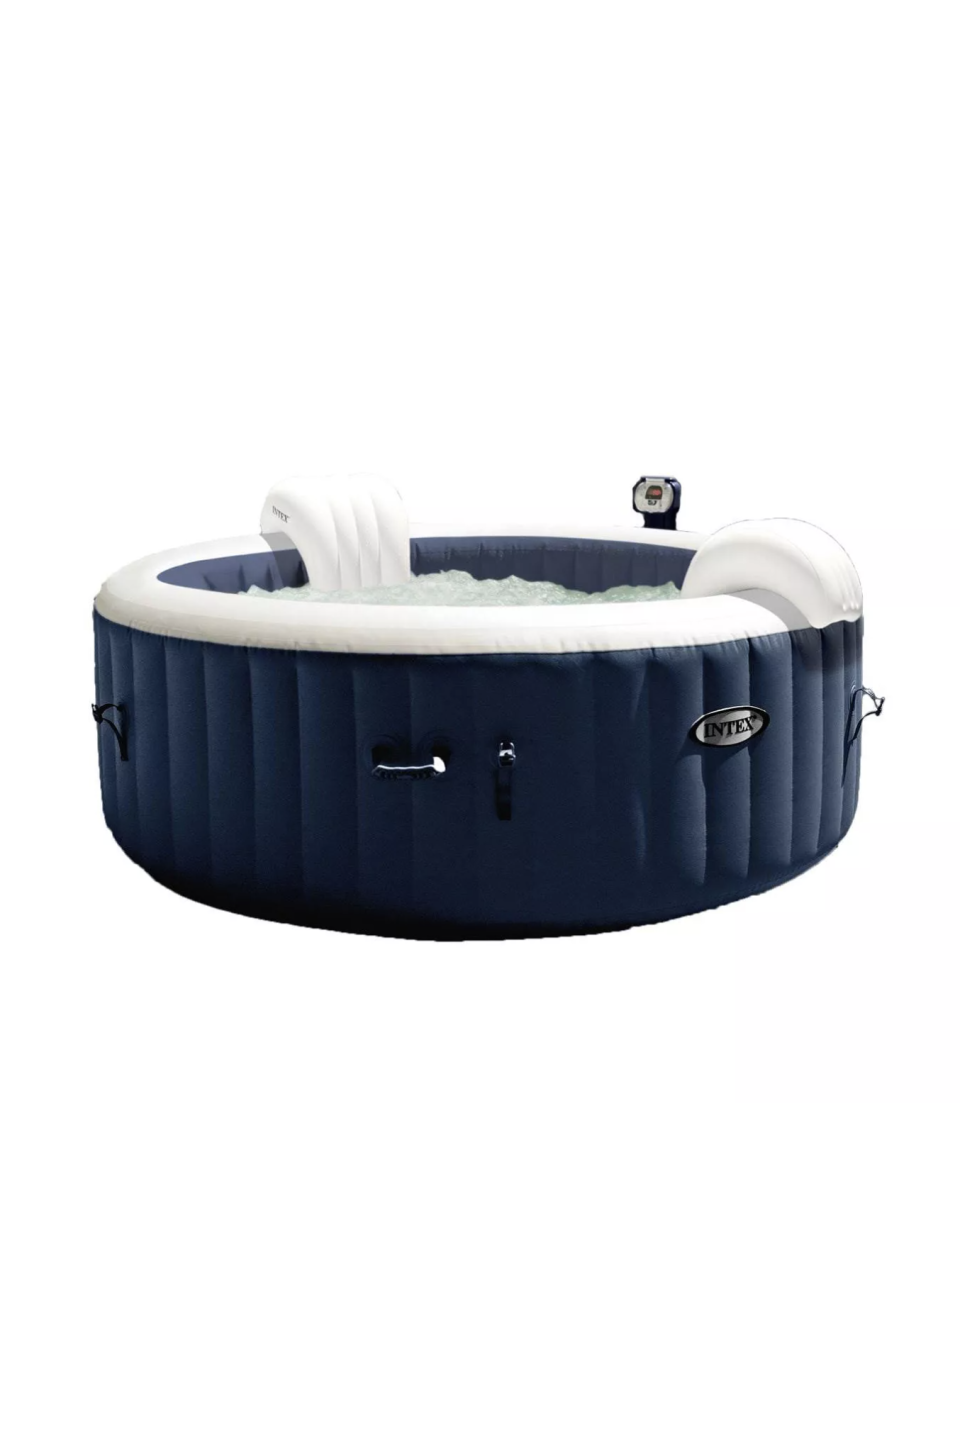 """<p><strong>Intex</strong></p><p>target.com</p><p><strong>$769.99</strong></p><p><a href=""""https://www.target.com/p/intex-purespa-4-person-home-inflatable-portable-heated-bubble-round-hot-tub/-/A-76120308"""" rel=""""nofollow noopener"""" target=""""_blank"""" data-ylk=""""slk:SHOP IT"""" class=""""link rapid-noclick-resp"""">SHOP IT</a></p><p>If you're feeling very extra these days, allow Intex's inflatable round hot tub to give you a home spa experience like no other. It comes with 140 high-powered jets and a control panel to make sure the water temperature is exactly how you like it. </p>"""